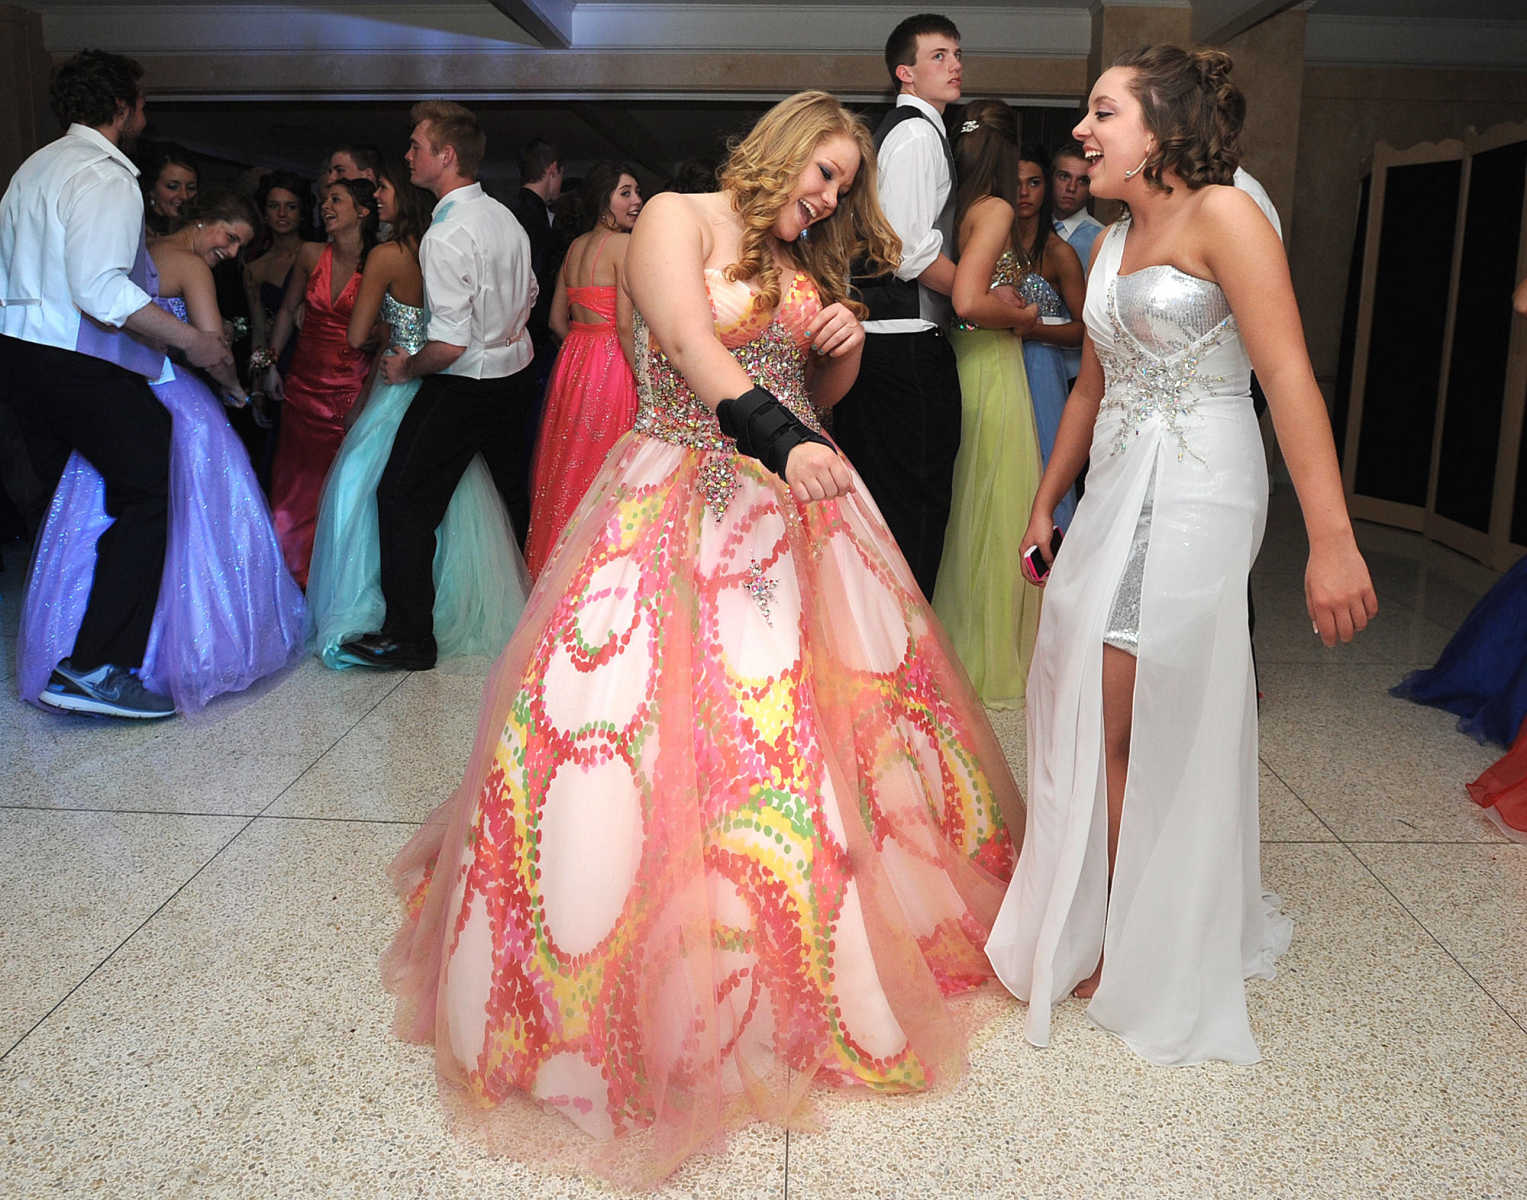 Saxony Lutheran High School Held Its A Dream Come True Themed Prom Saturday April 6 2013 At The Cape Girardeau Country Club Laura Simon